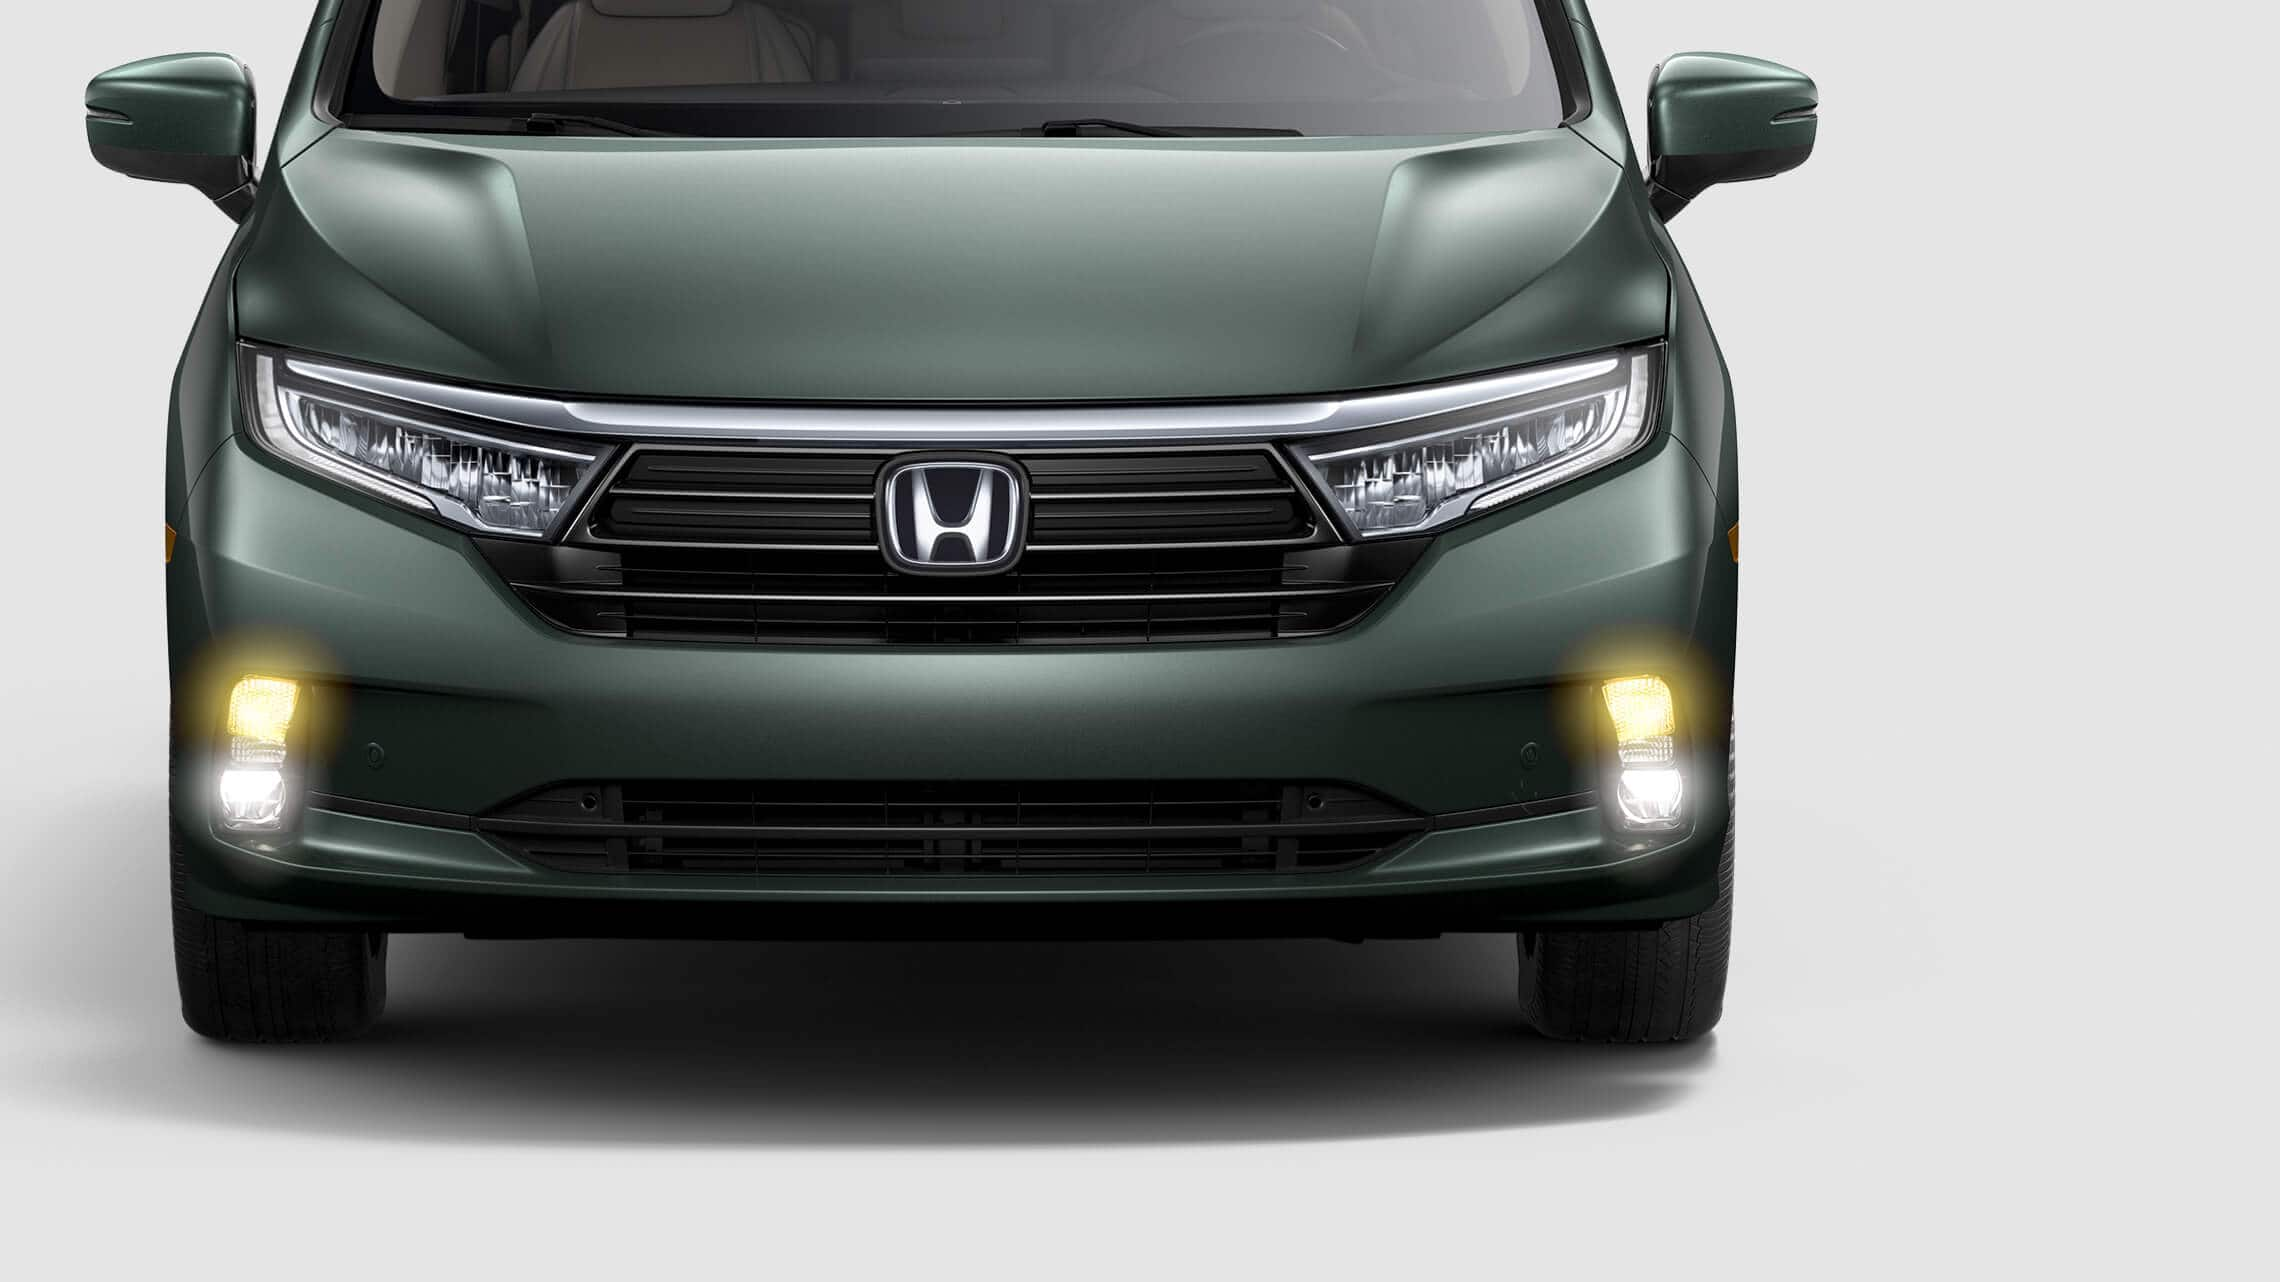 Front close-up view of driver-side headlight on the 2021 Honda Odyssey Elite in Forest Mist Metallic.